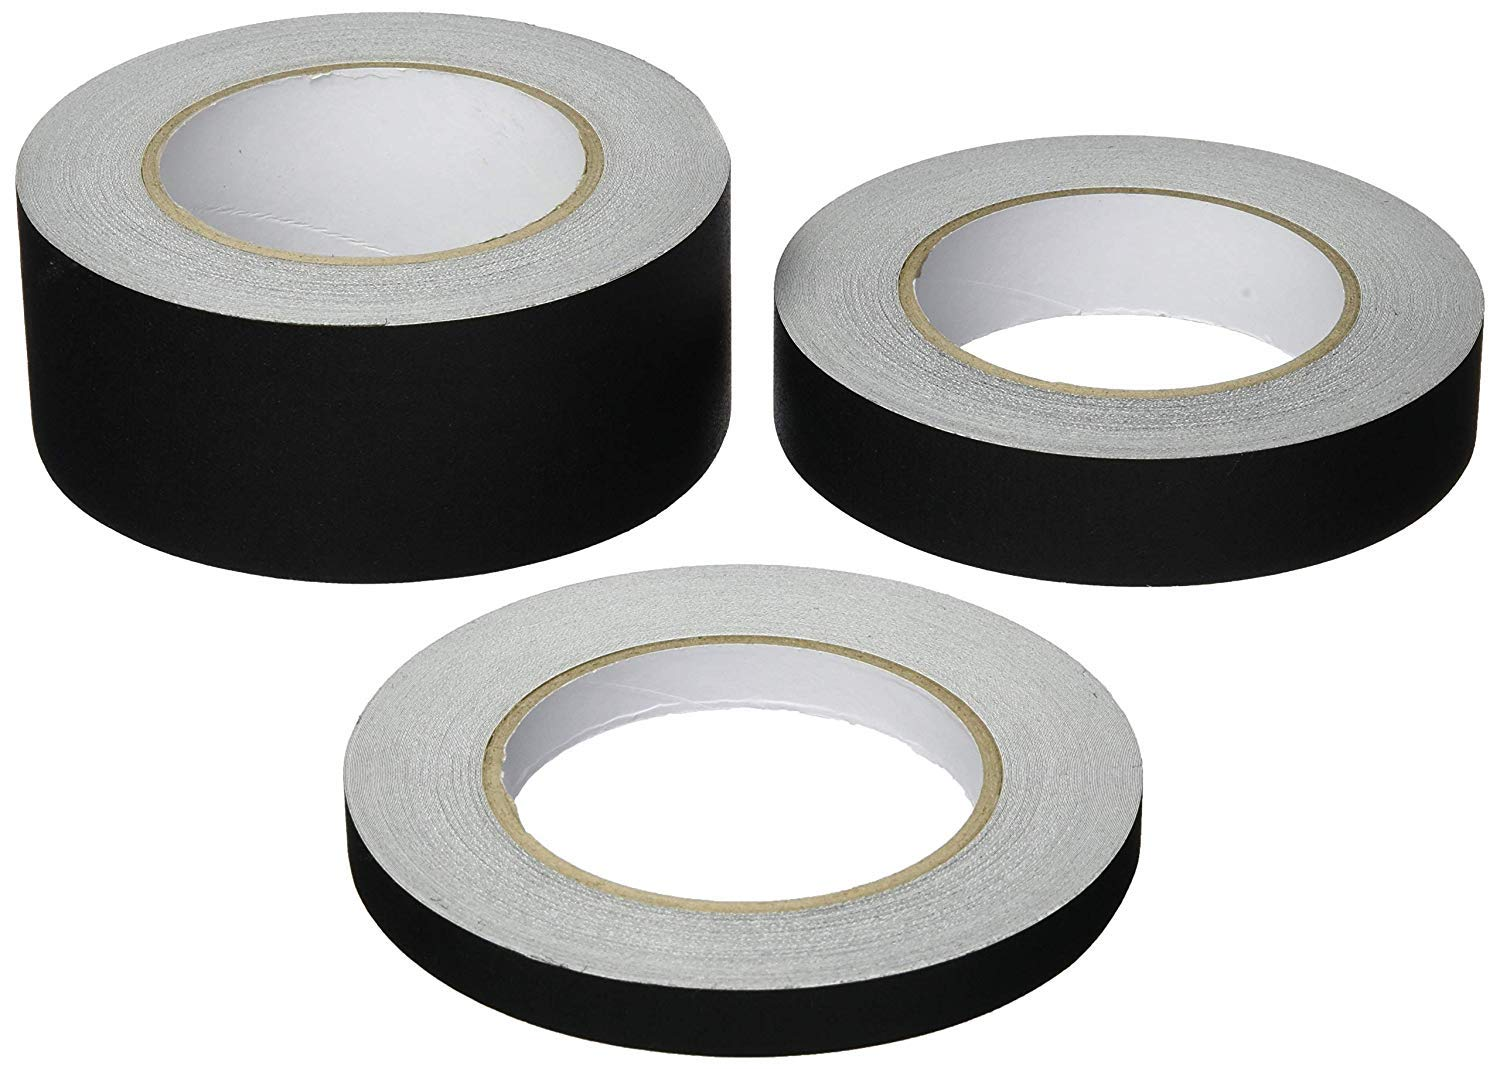 SticMaster Premium Grade Gaffers Tape] Multi Pack (1)2'' (1)1'' (1)½'' inch x 30 Yards Each-Black Matte Cloth Photographers Tape -Main Stage Gaff Duct Tape - Easy to Tear & No Residue